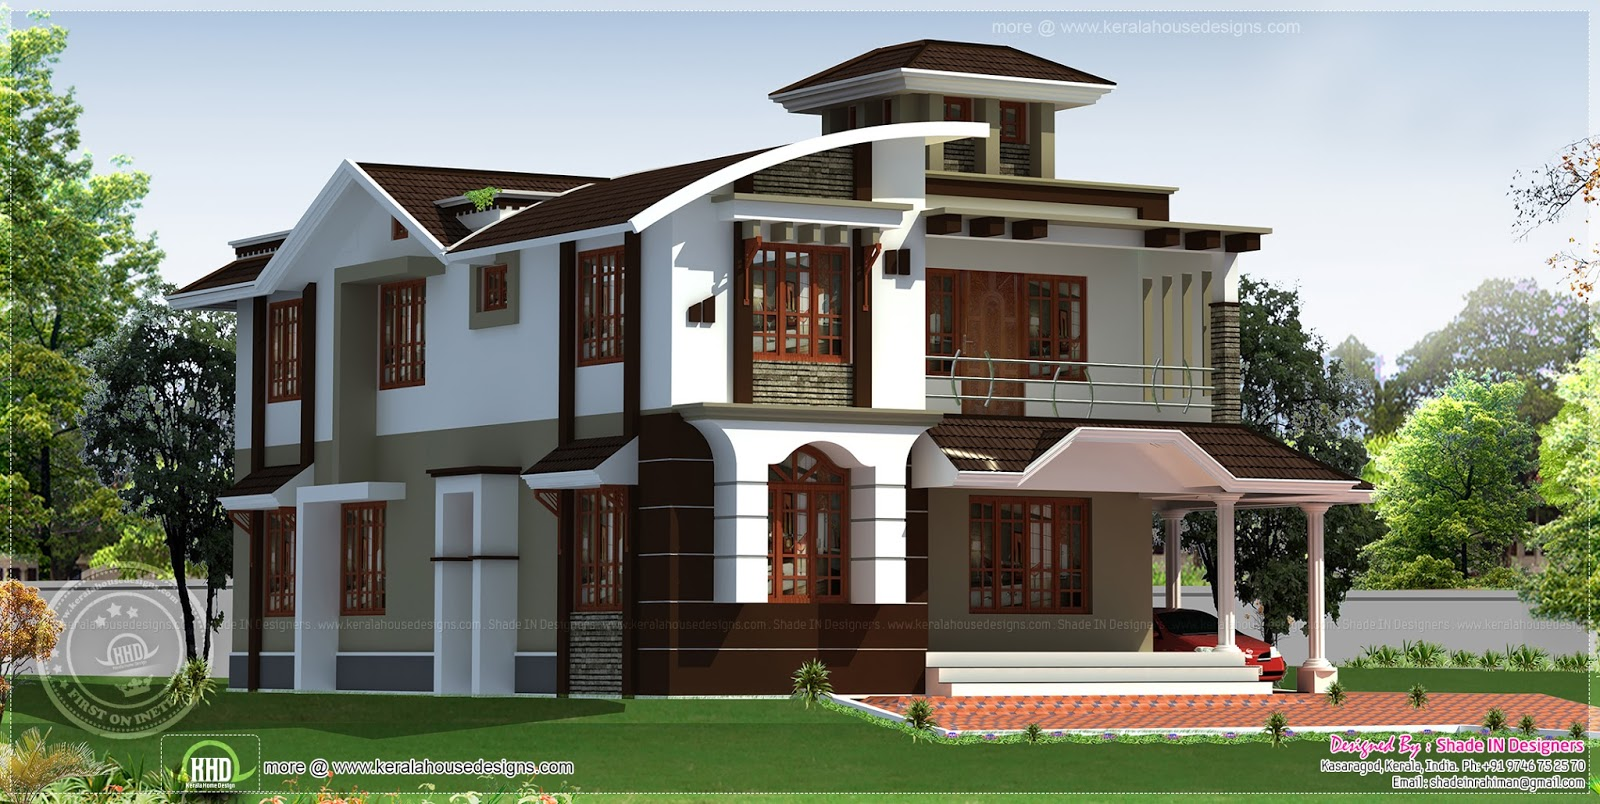 254 Square Meter 4 Bedroom House With Tower Kerala Home Design